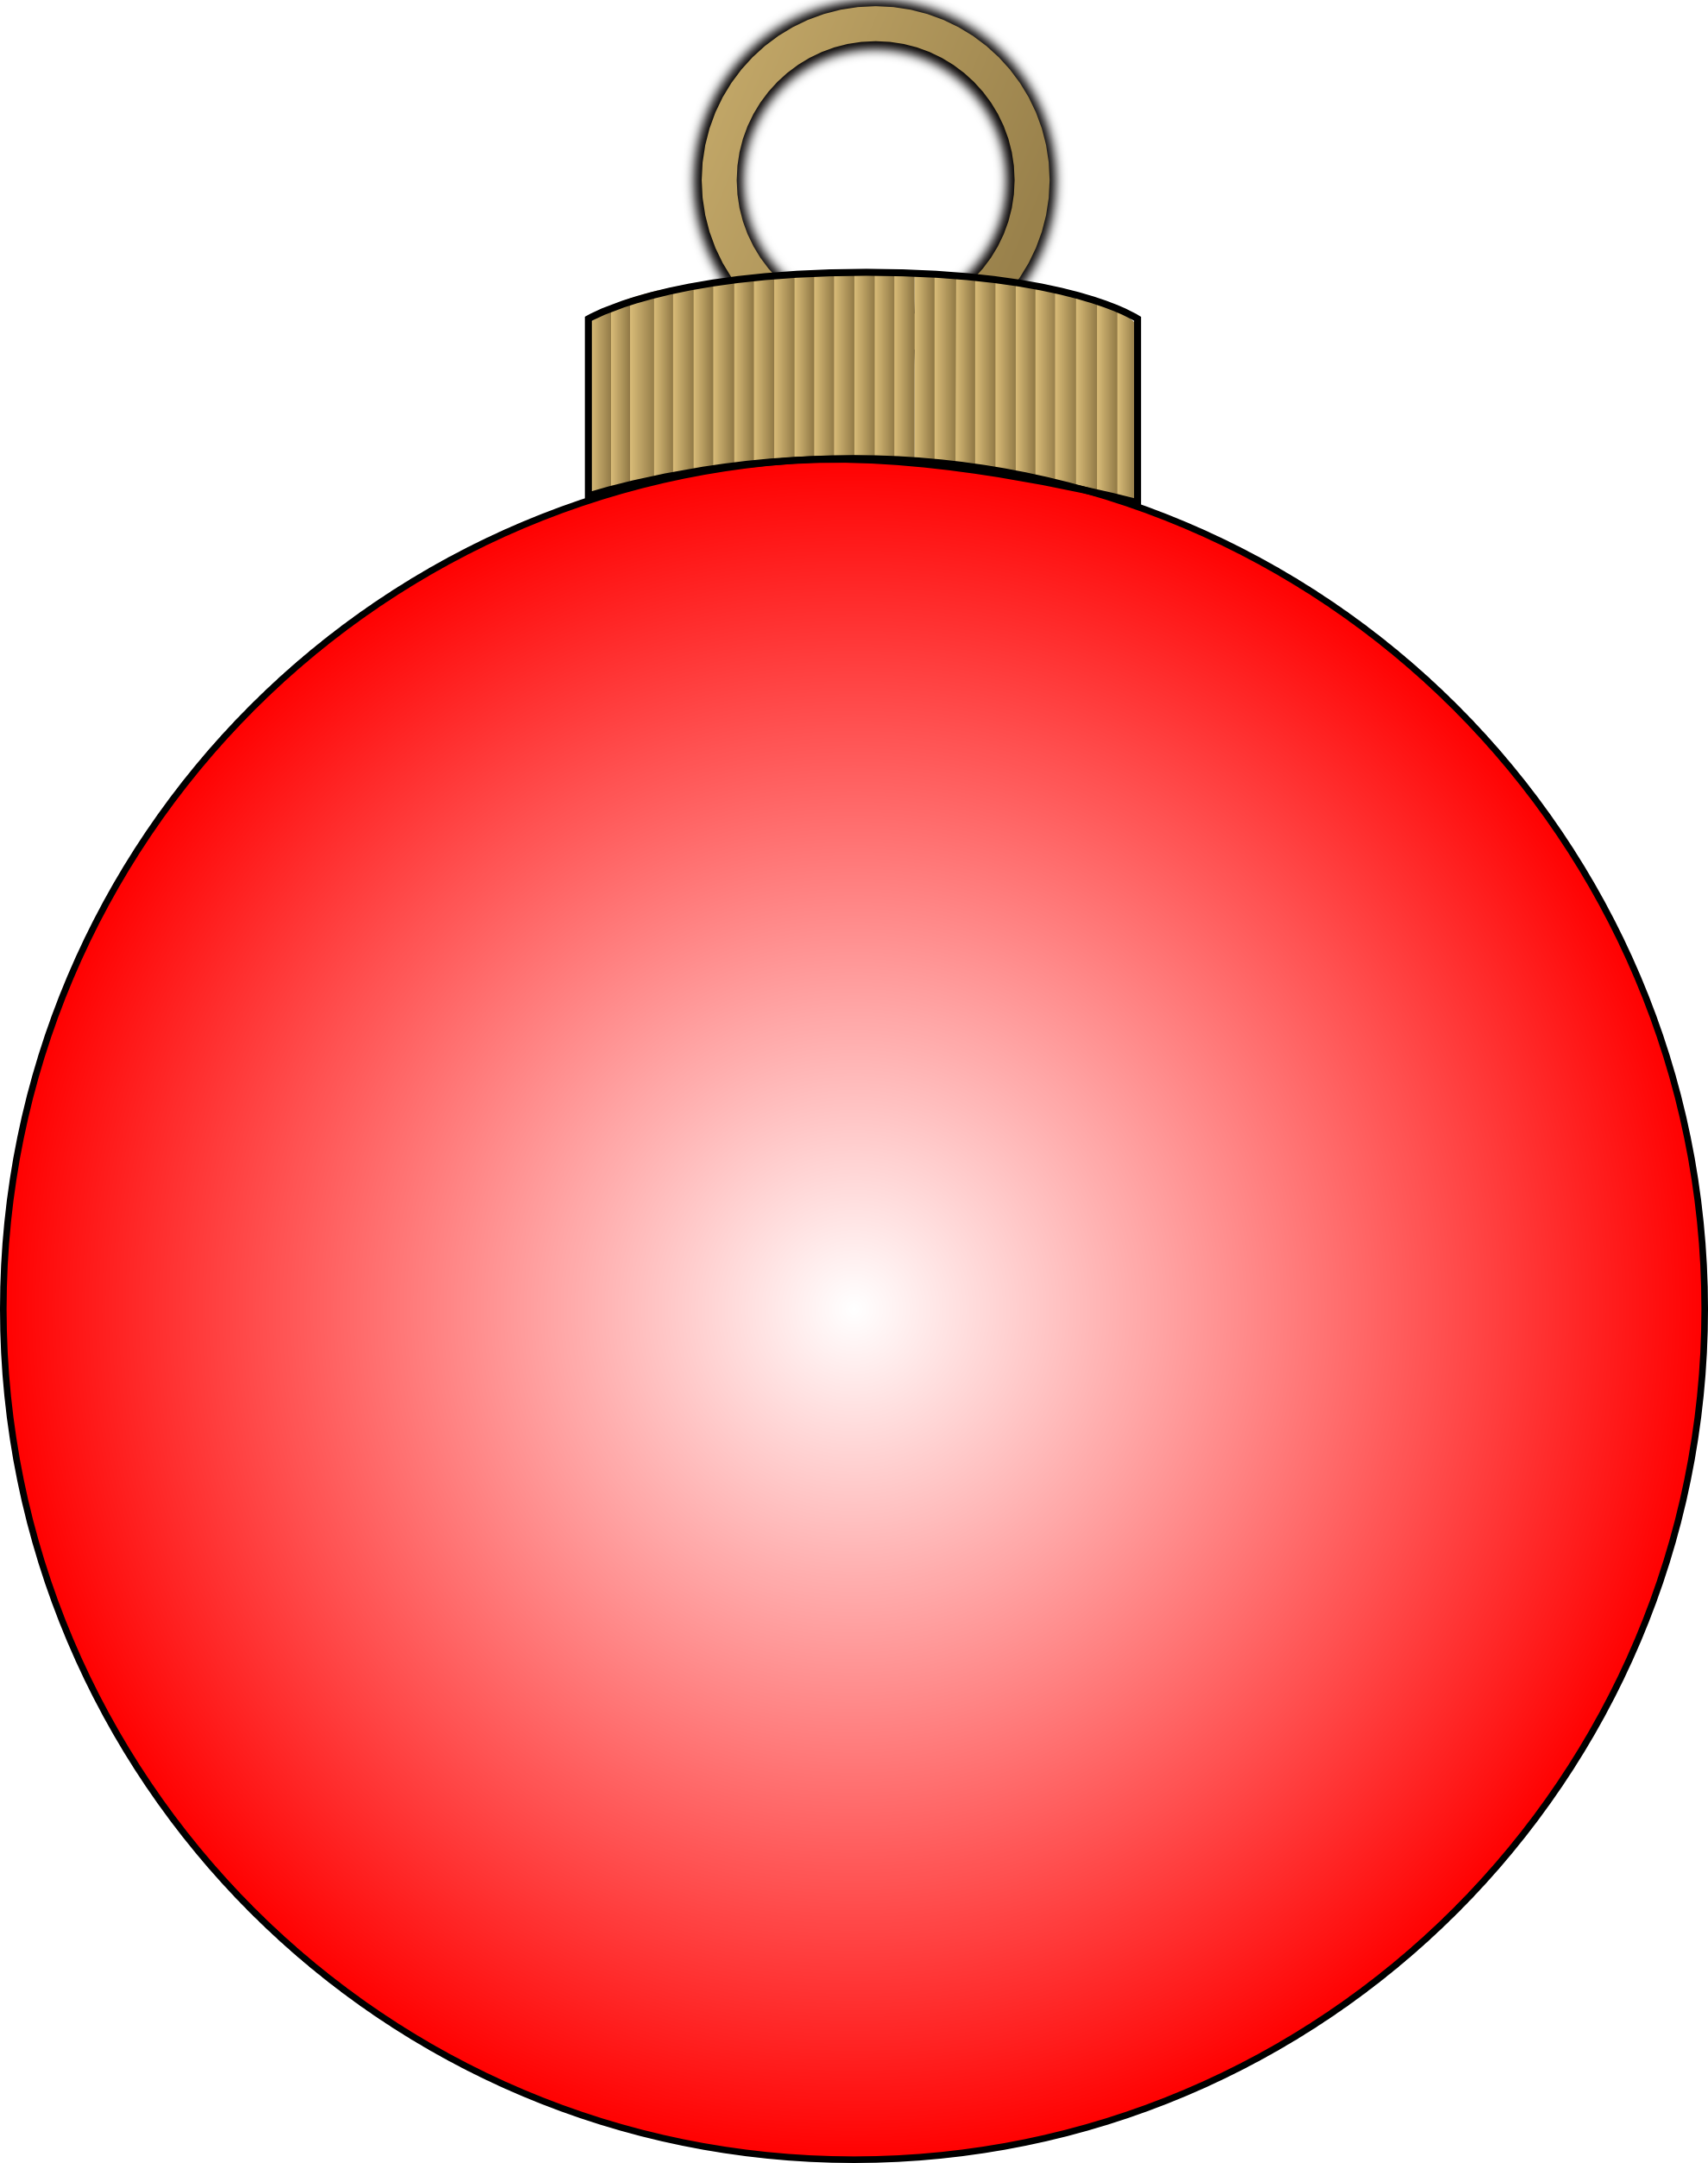 Christmas ball clipart png free 28+ Collection of Christmas Balls Clipart Png | High quality, free ... png free